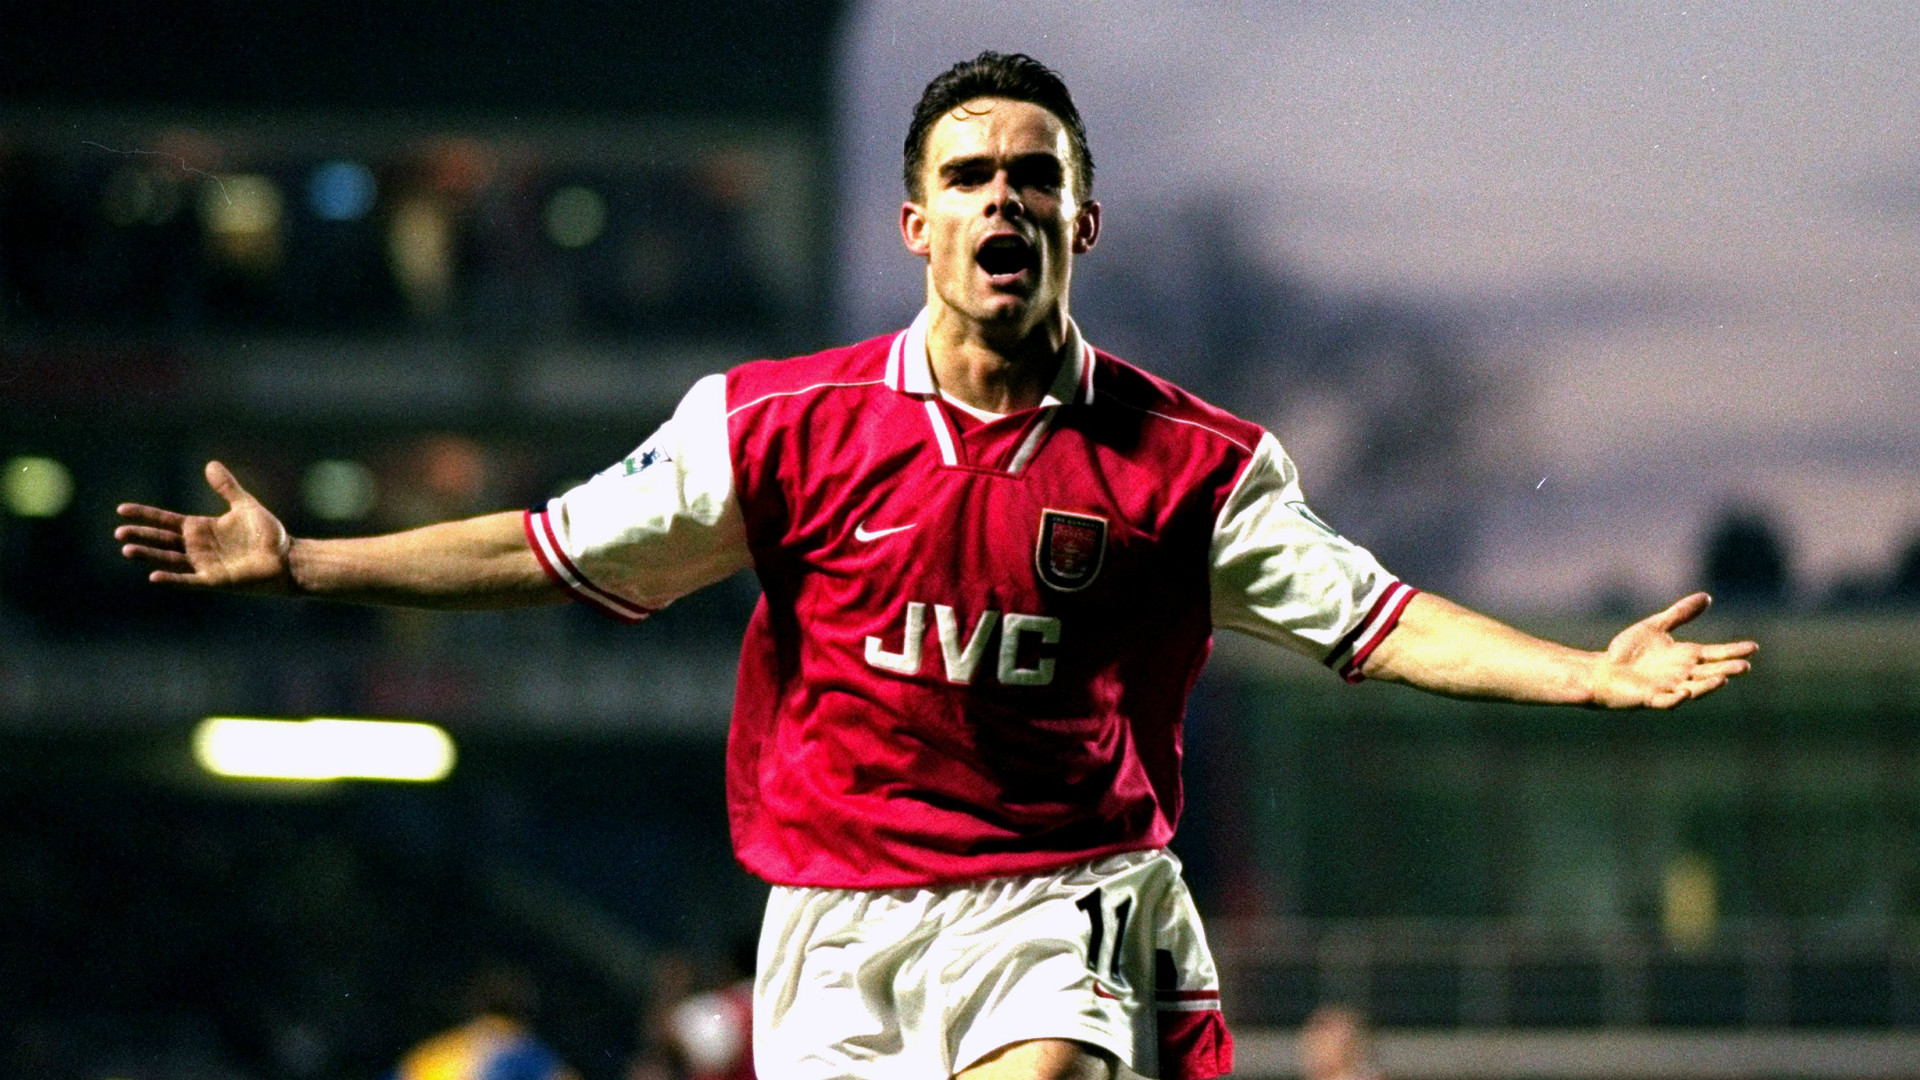 Marc Overmars Emerges as Arsenal's target for Sporting director role.